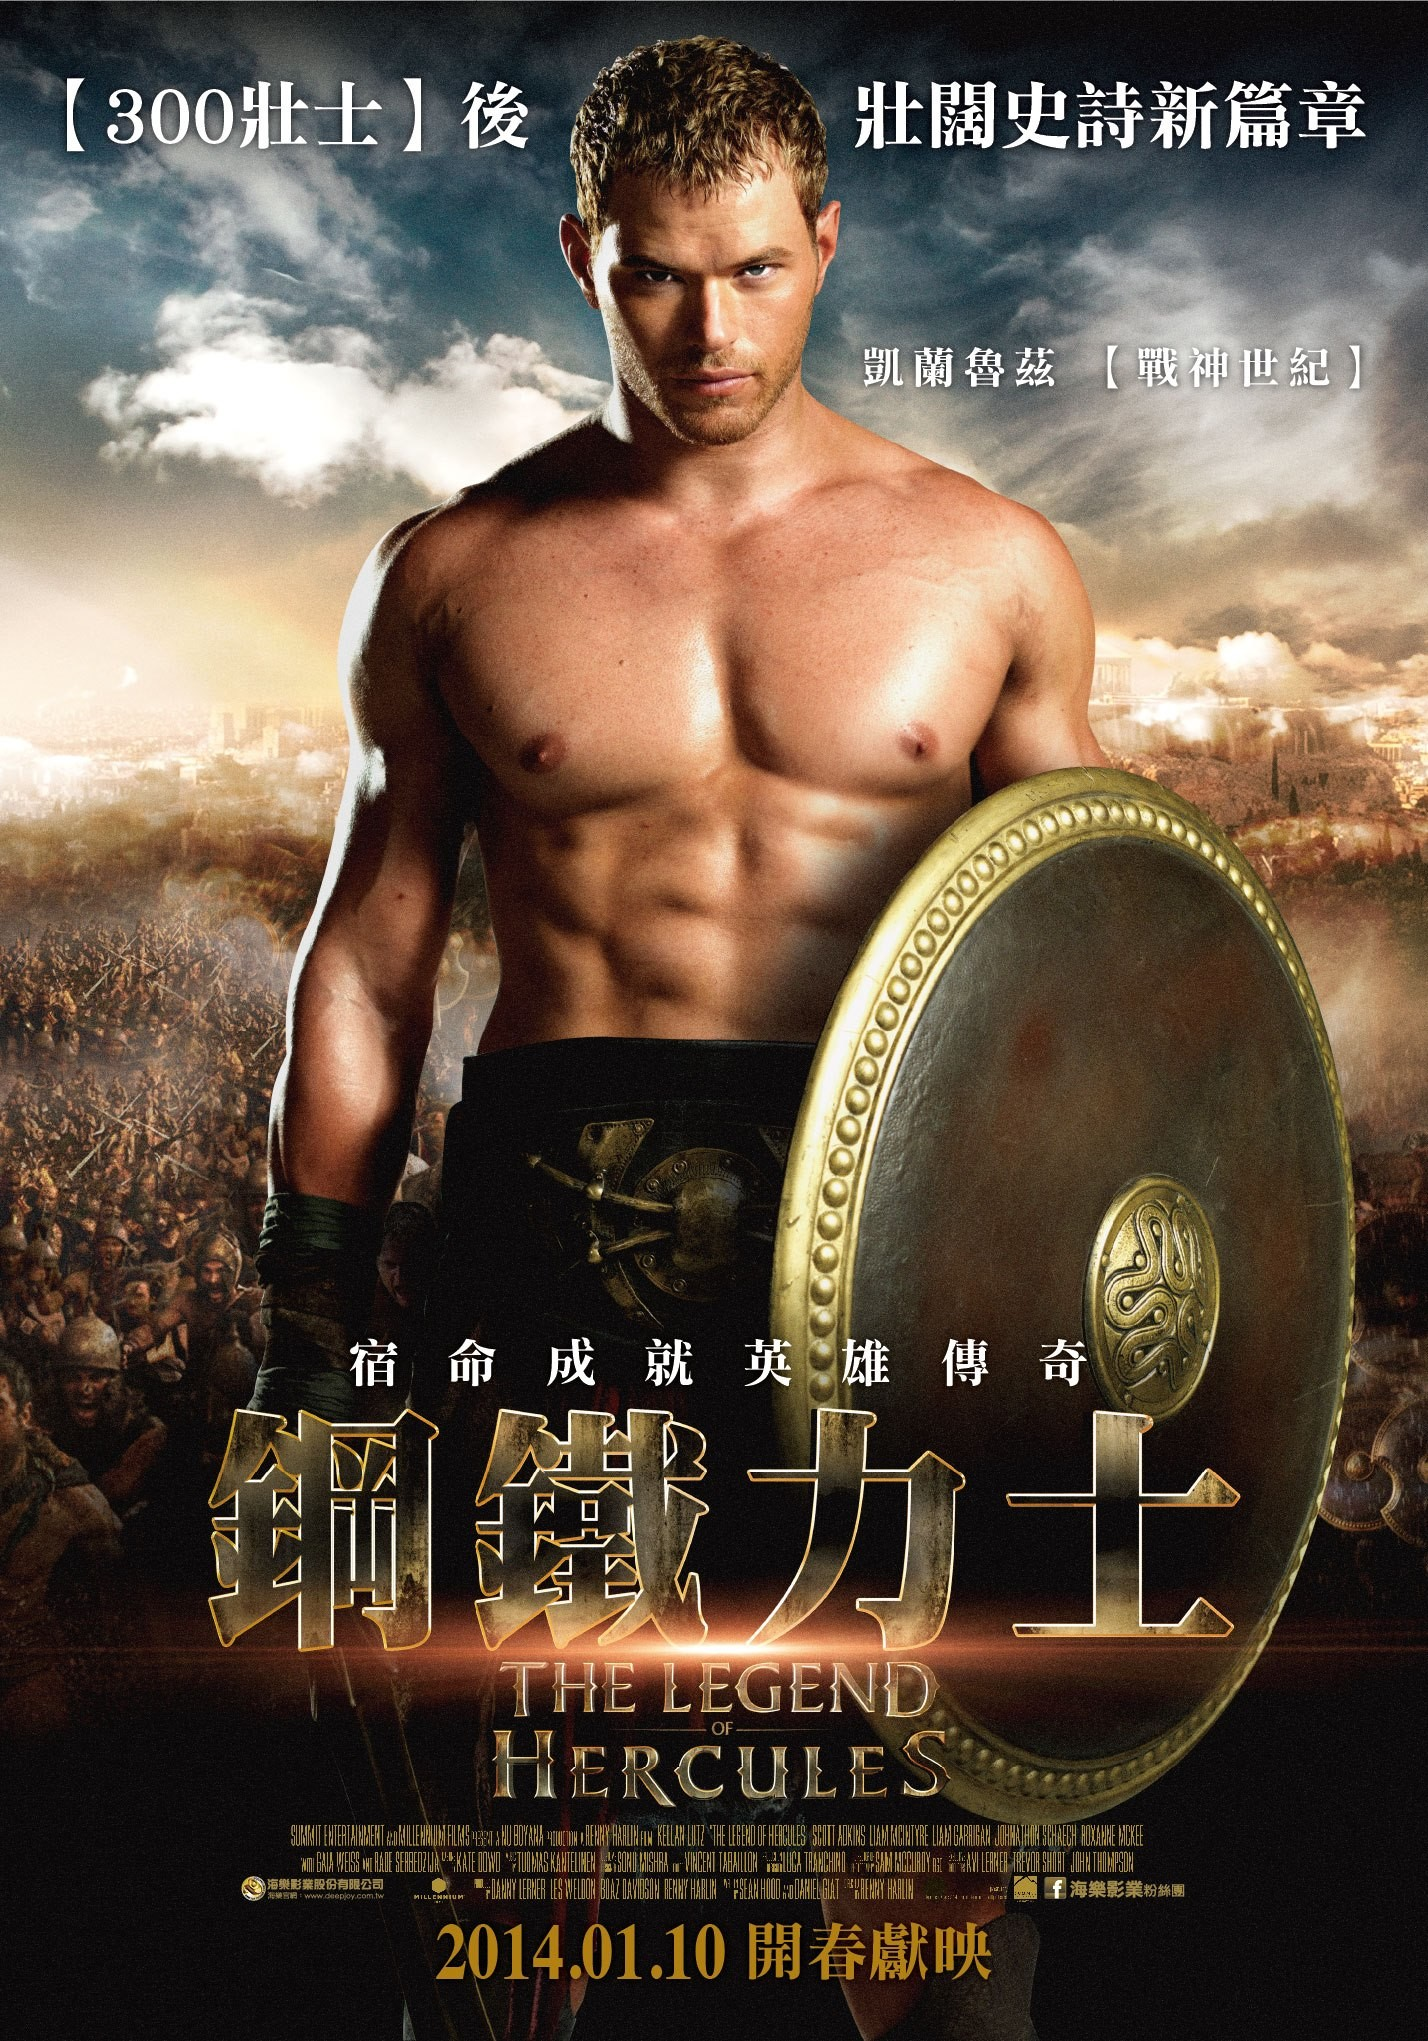 The Legend of Hercules-Official Poster Banner PROMO POSTER CHAR-21DEZEMBRO2013-04